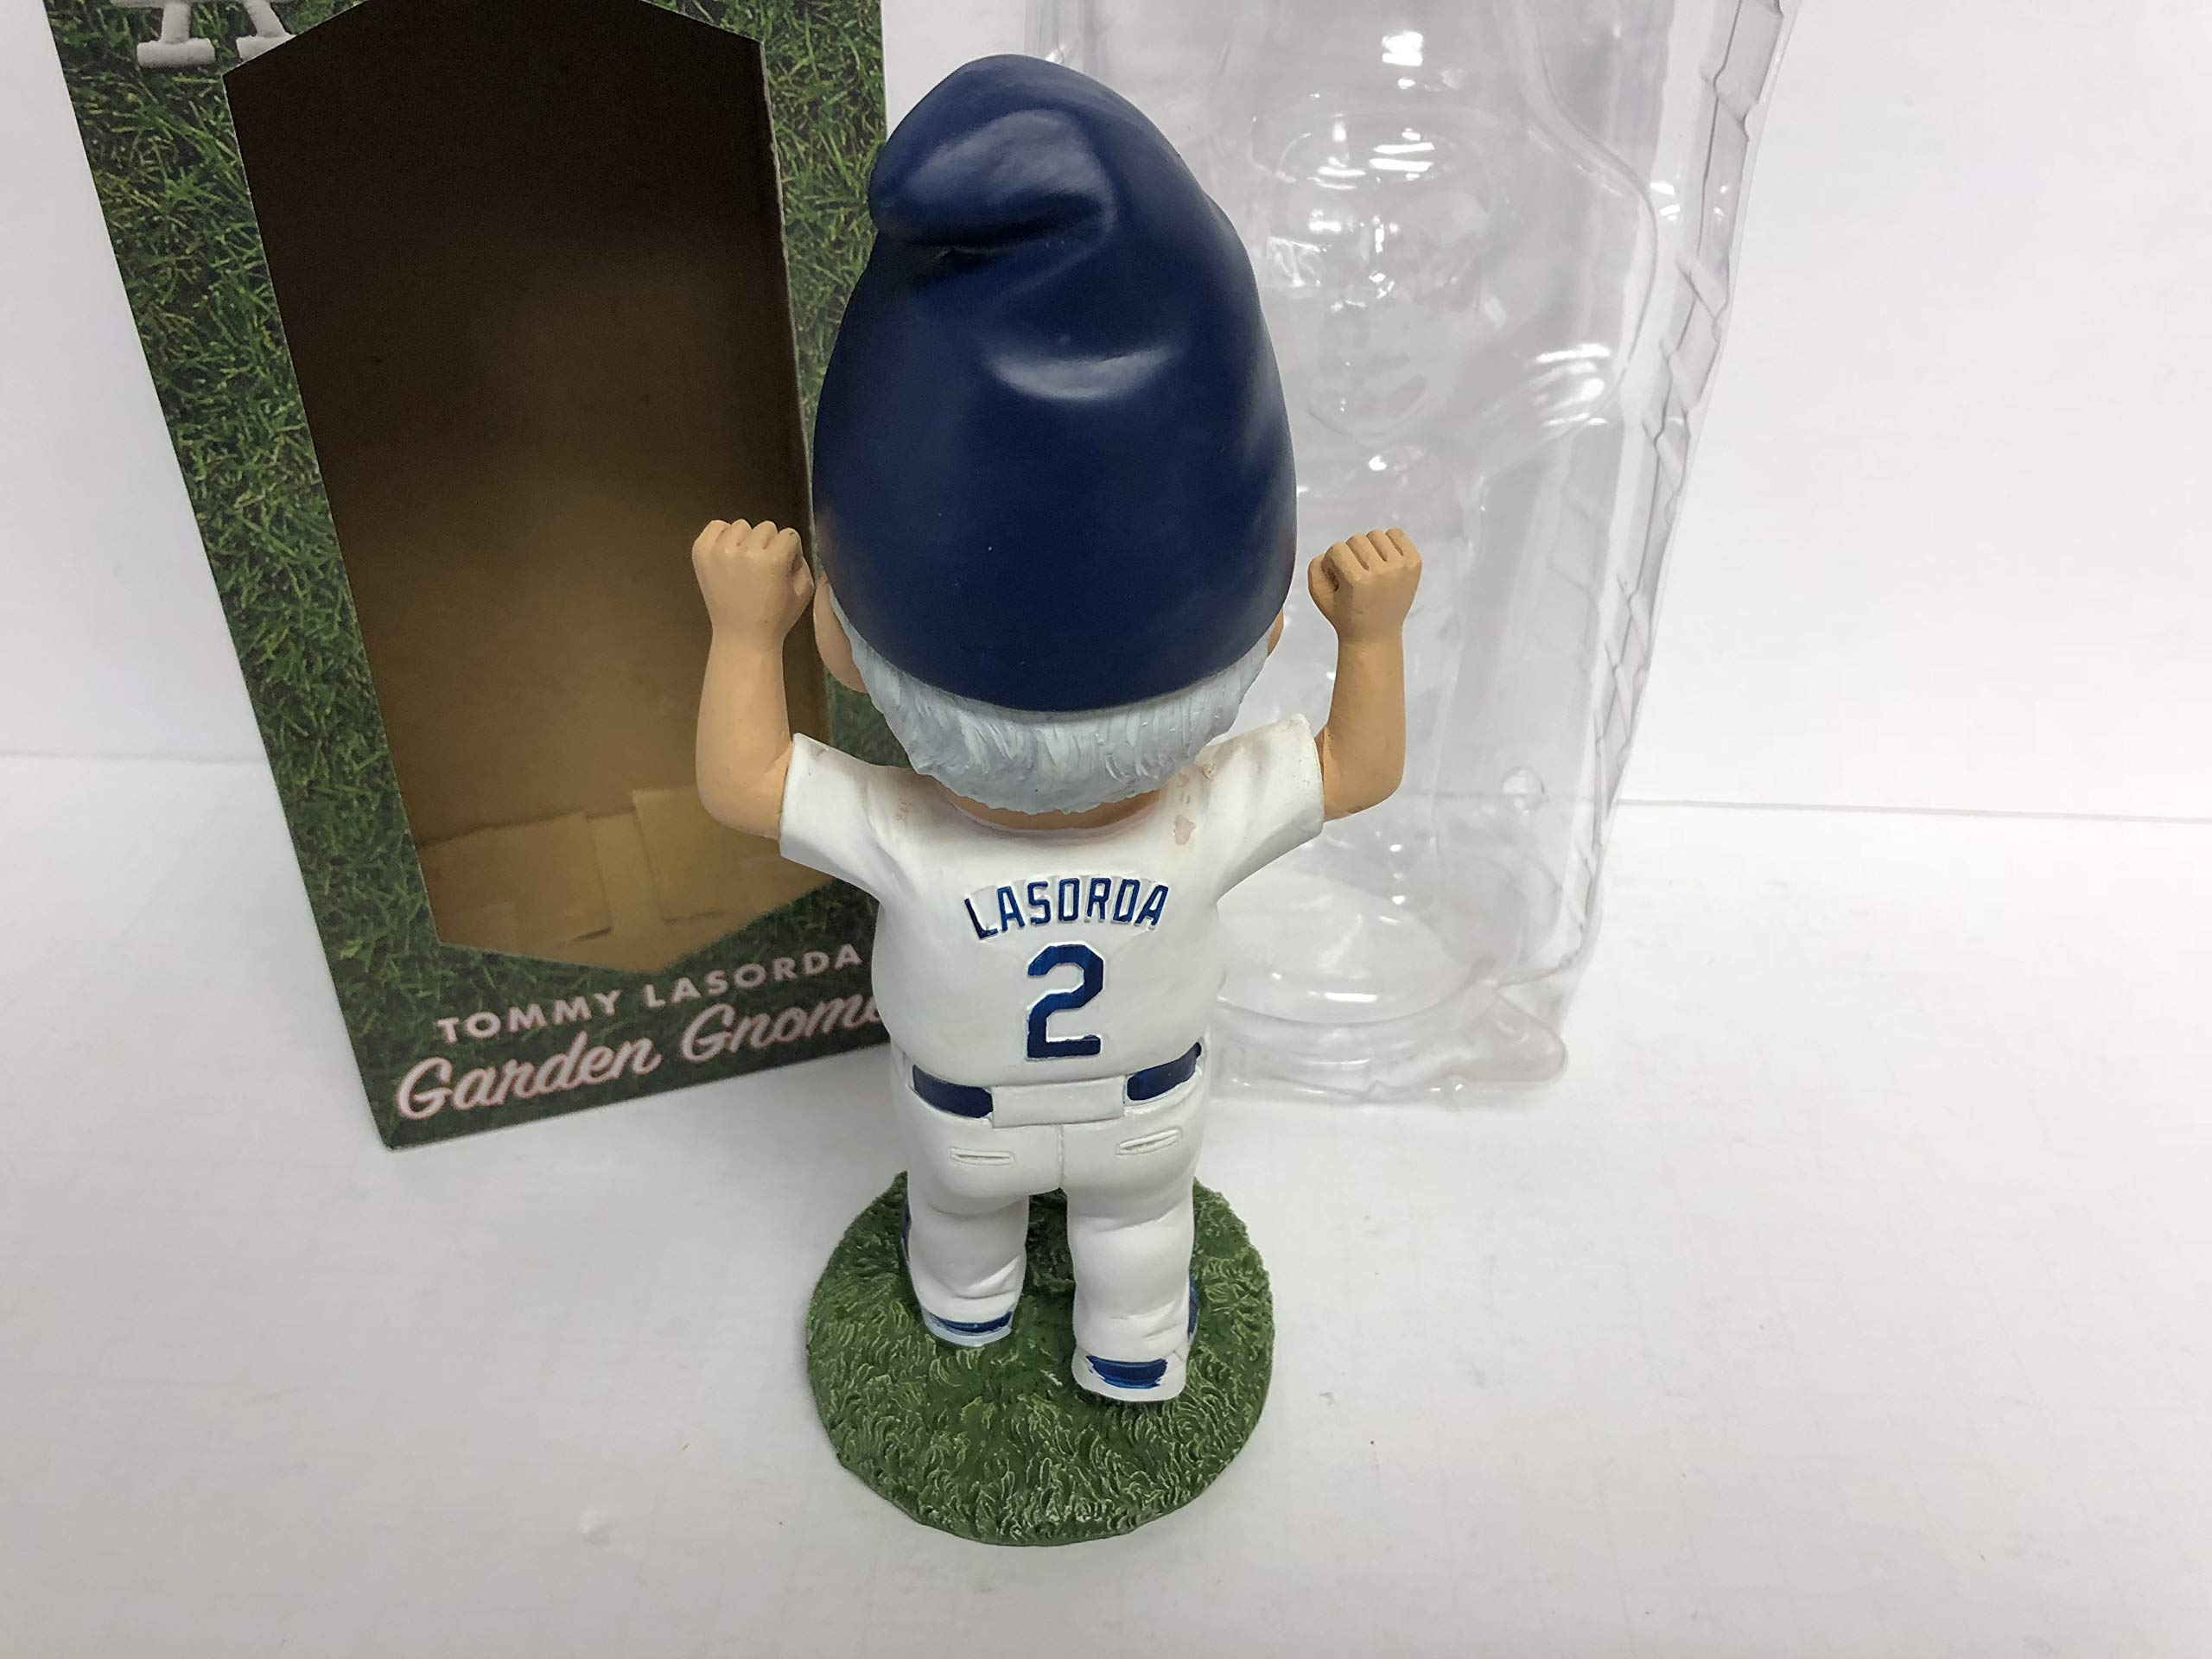 Tommy Lasorda 2015 Garden Gnome Legendary HOF Manager Los Angeles Dodgers Statue Figure SGA